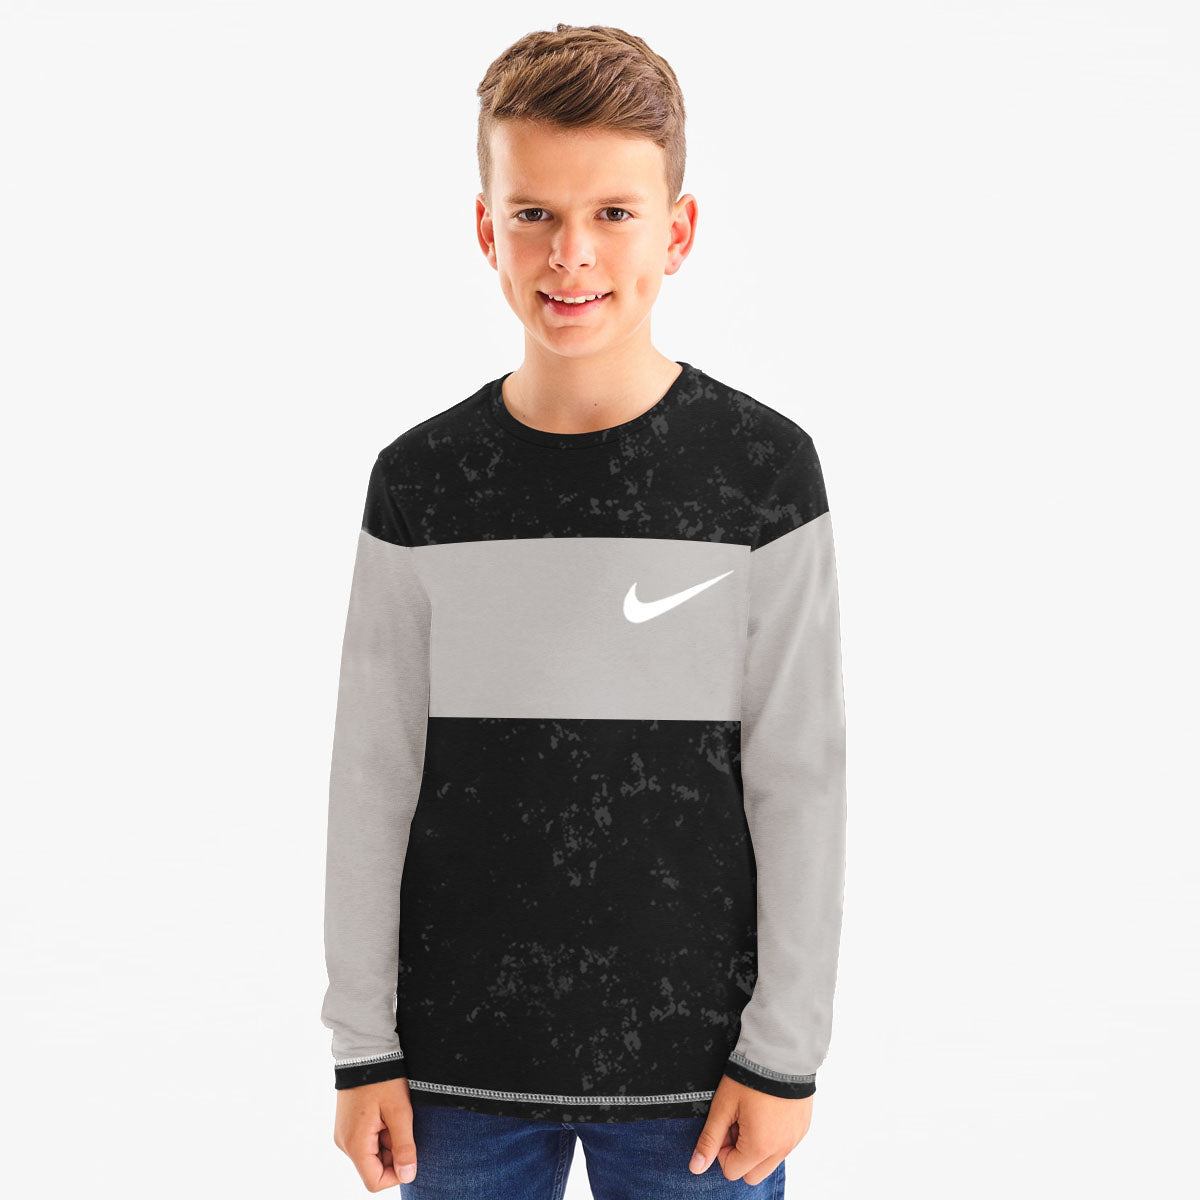 NK Crew Neck Single Jersey Long Sleeve Tee Shirt For Kids-Black Faded With Grey Panel-SP3523